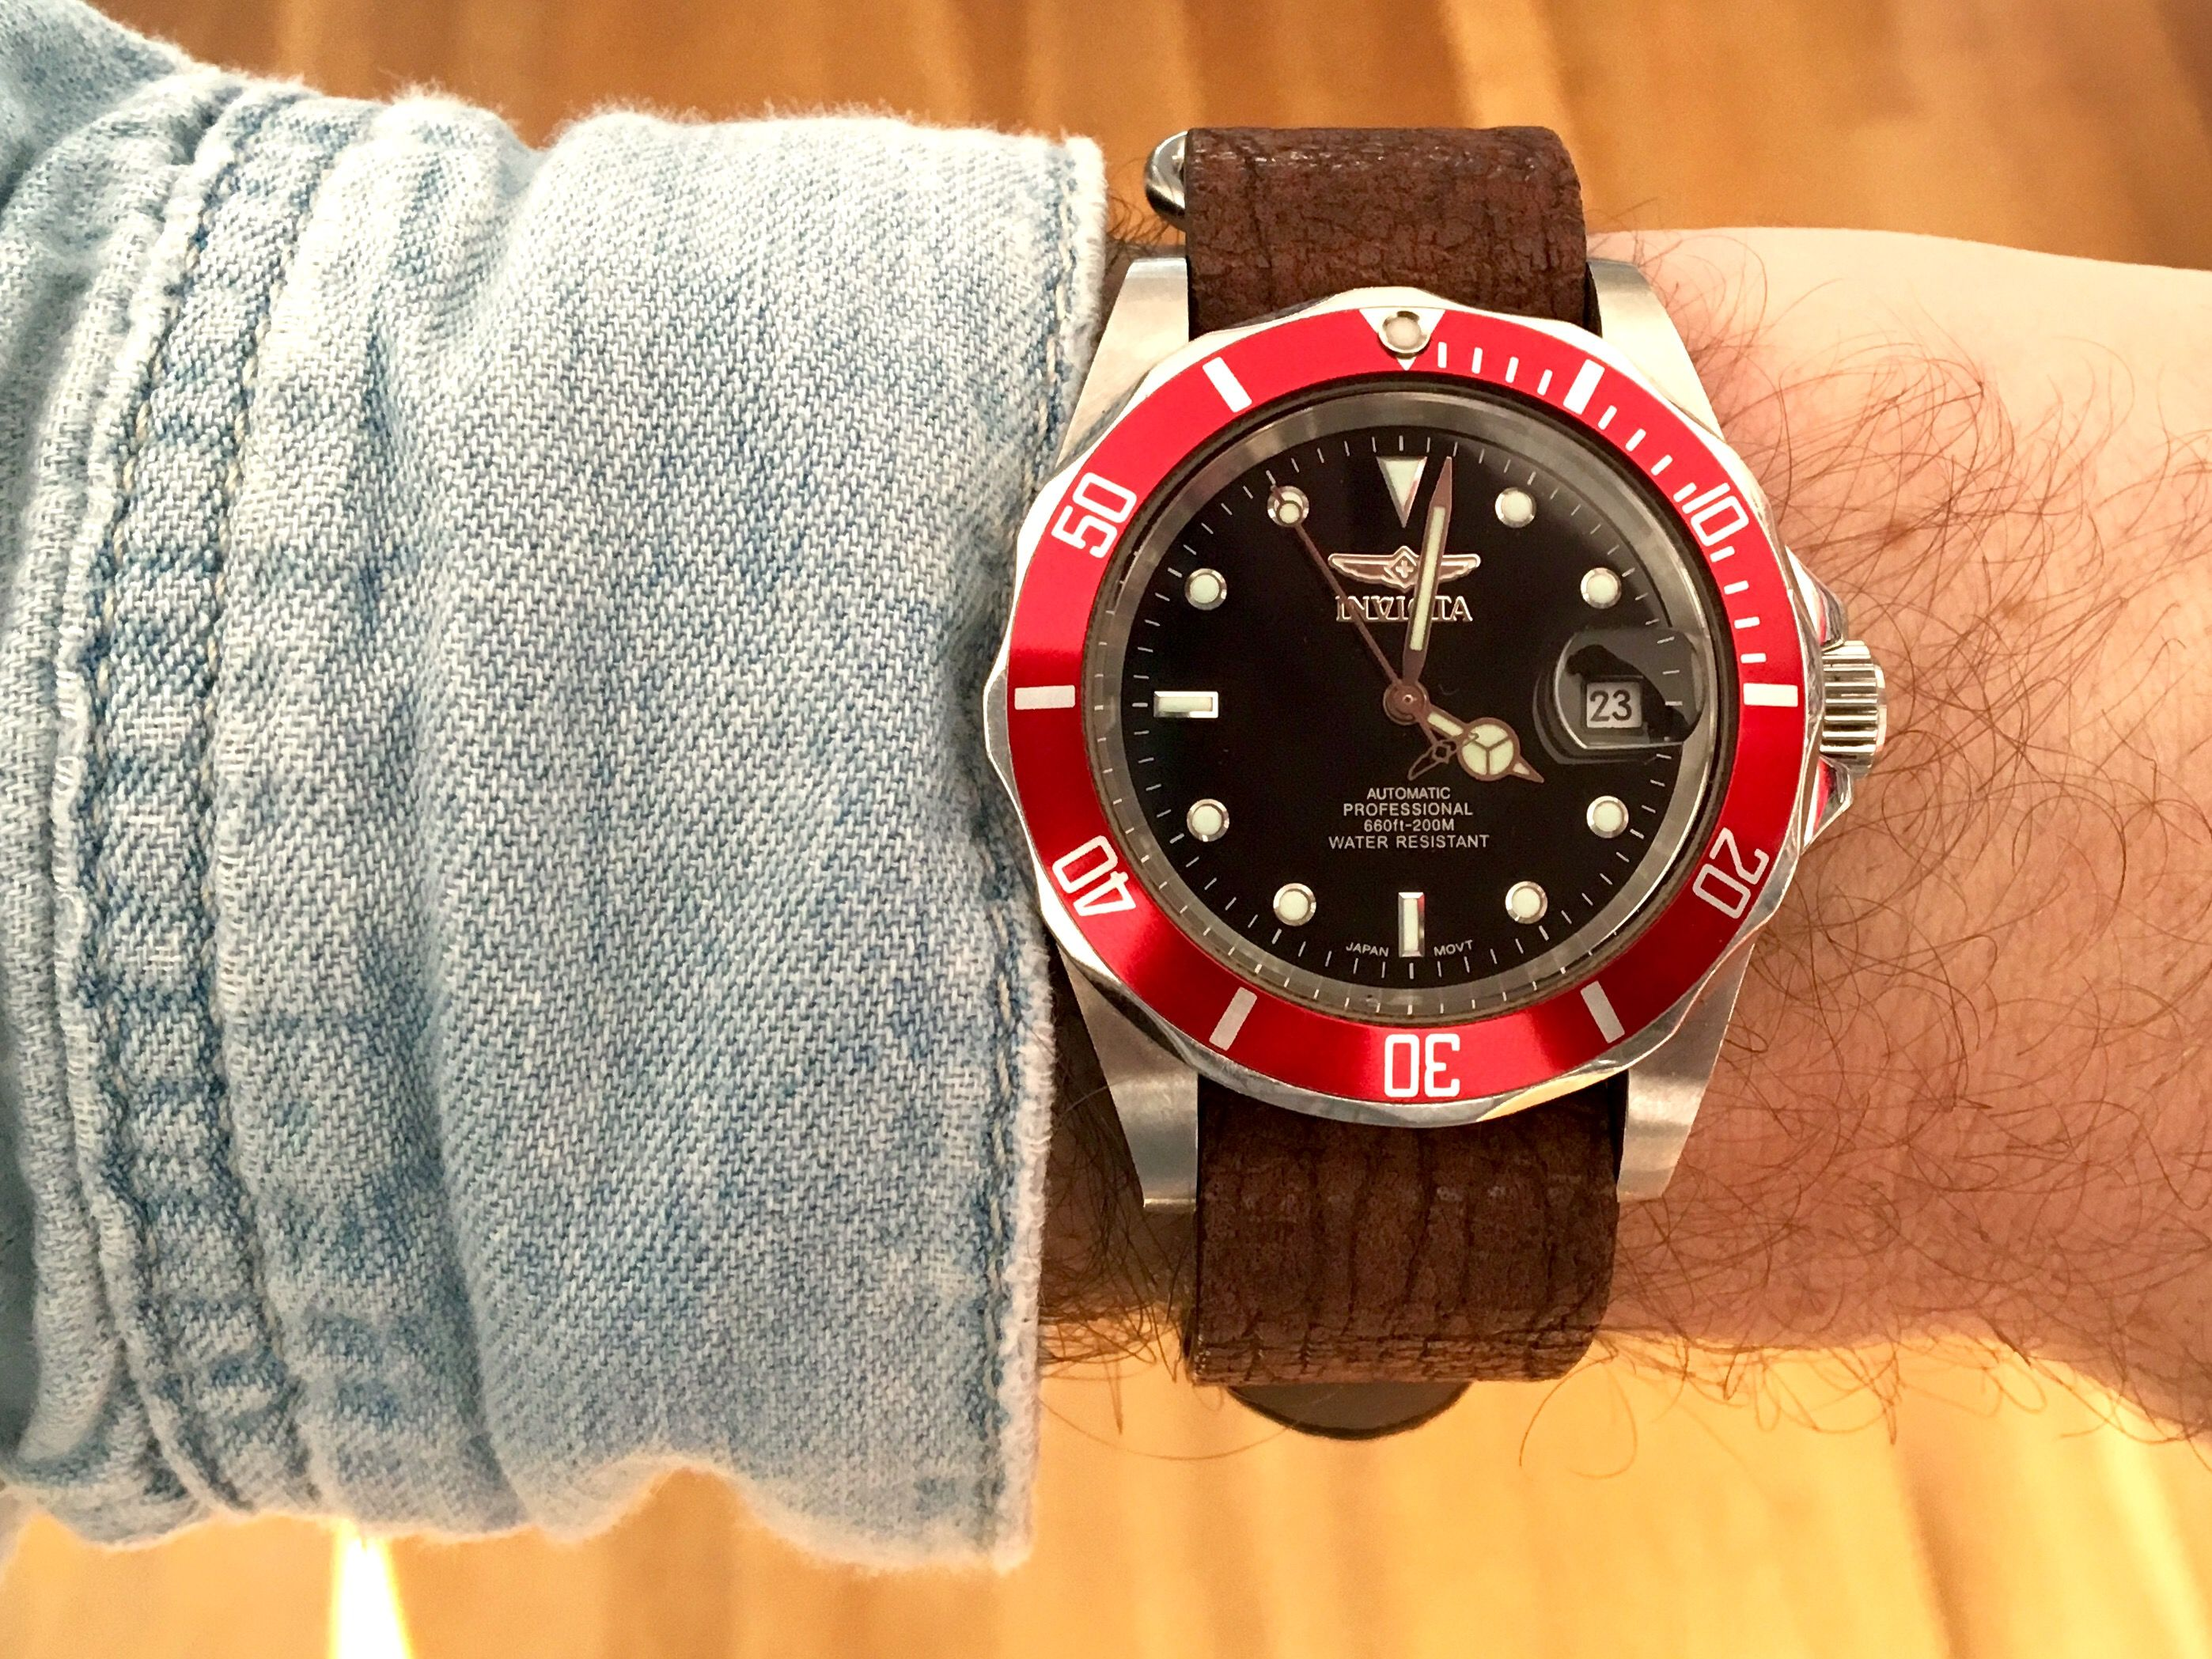 Tudor Black Bay homage watch  Invicta red bezel insert mod in honor